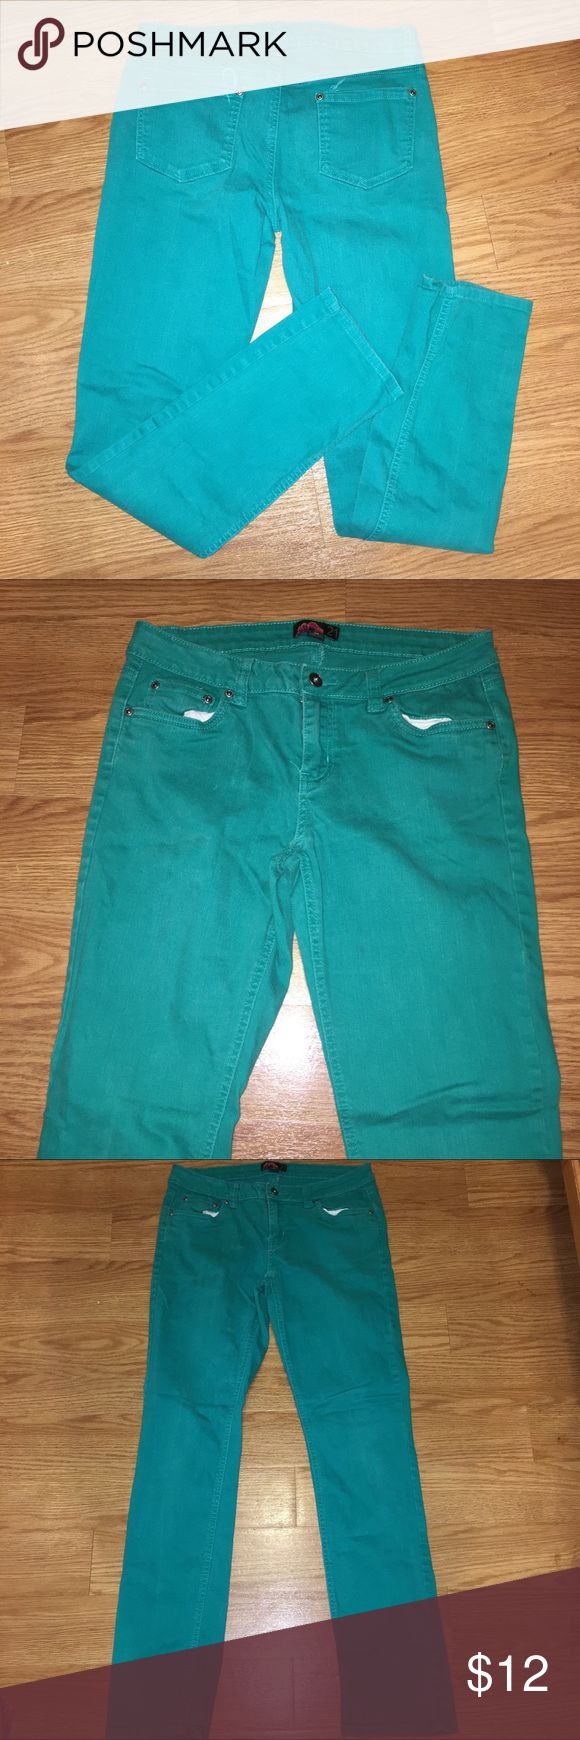 30% Off Bundles Aqua Jeans Cute, bright jeans with a good deal of stretch. Great condition. No marks or stains. Add three more items to your bundle for 30% off. Forever 21 Jeans Skinny